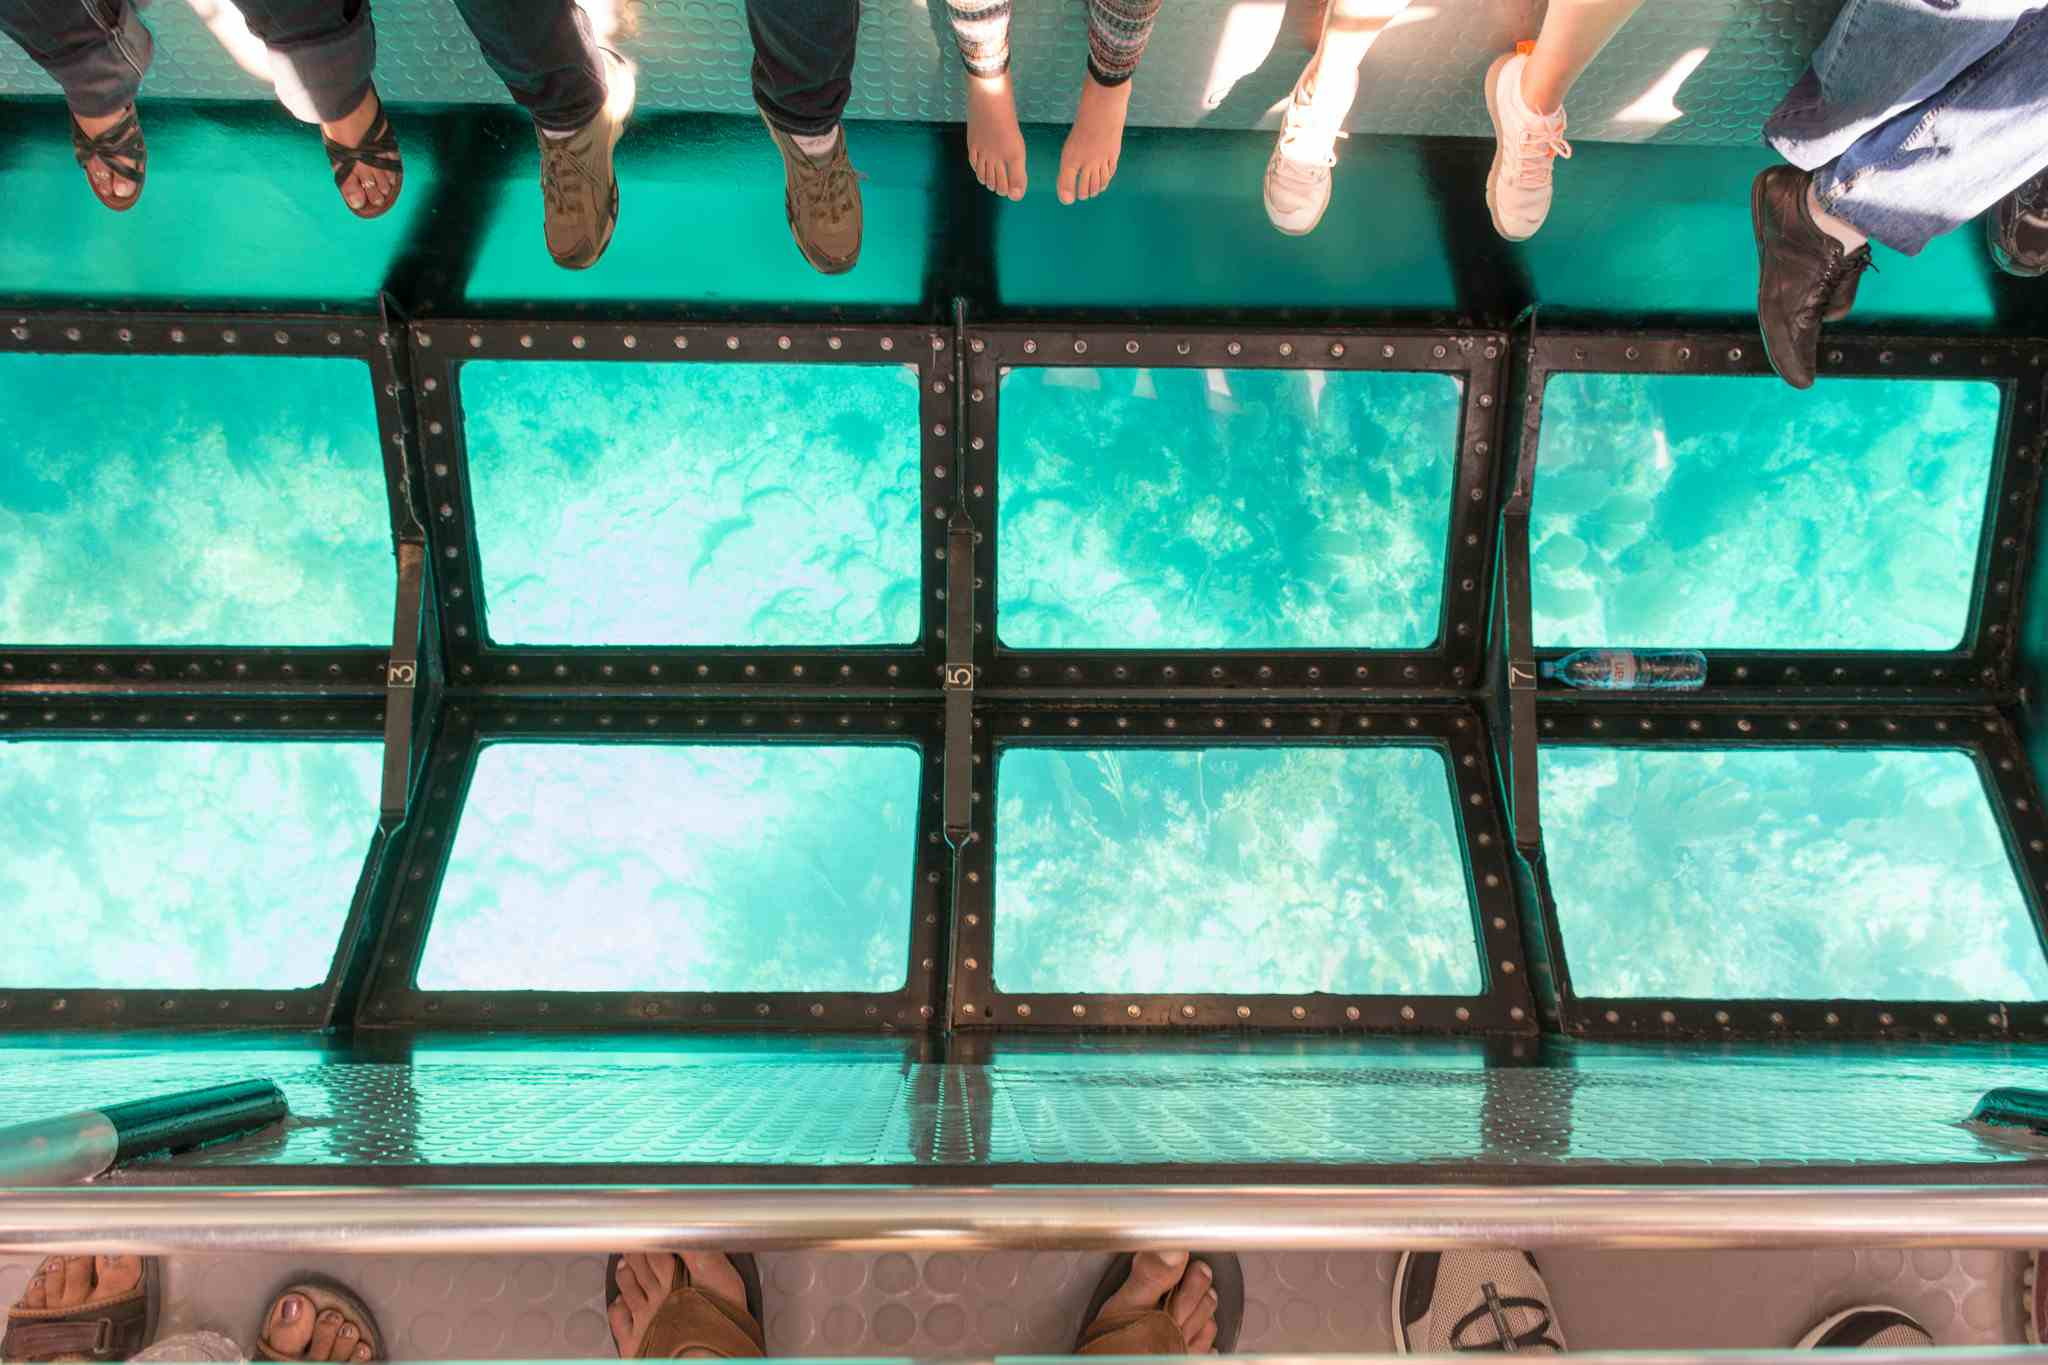 Peoples feet and the glass bottom of a tour boat